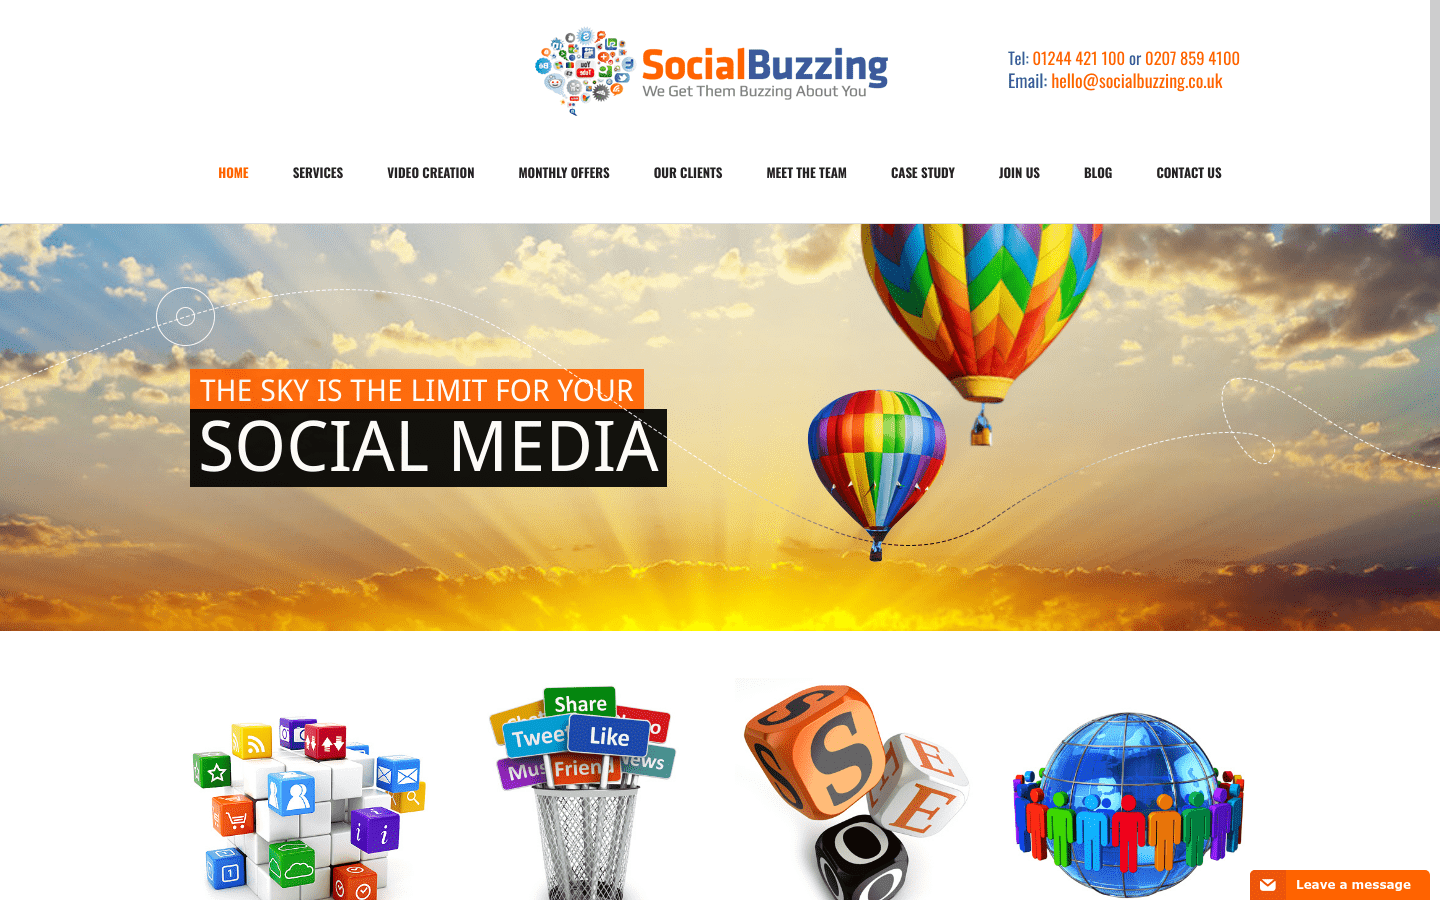 Social Buzzing reviews and complaints